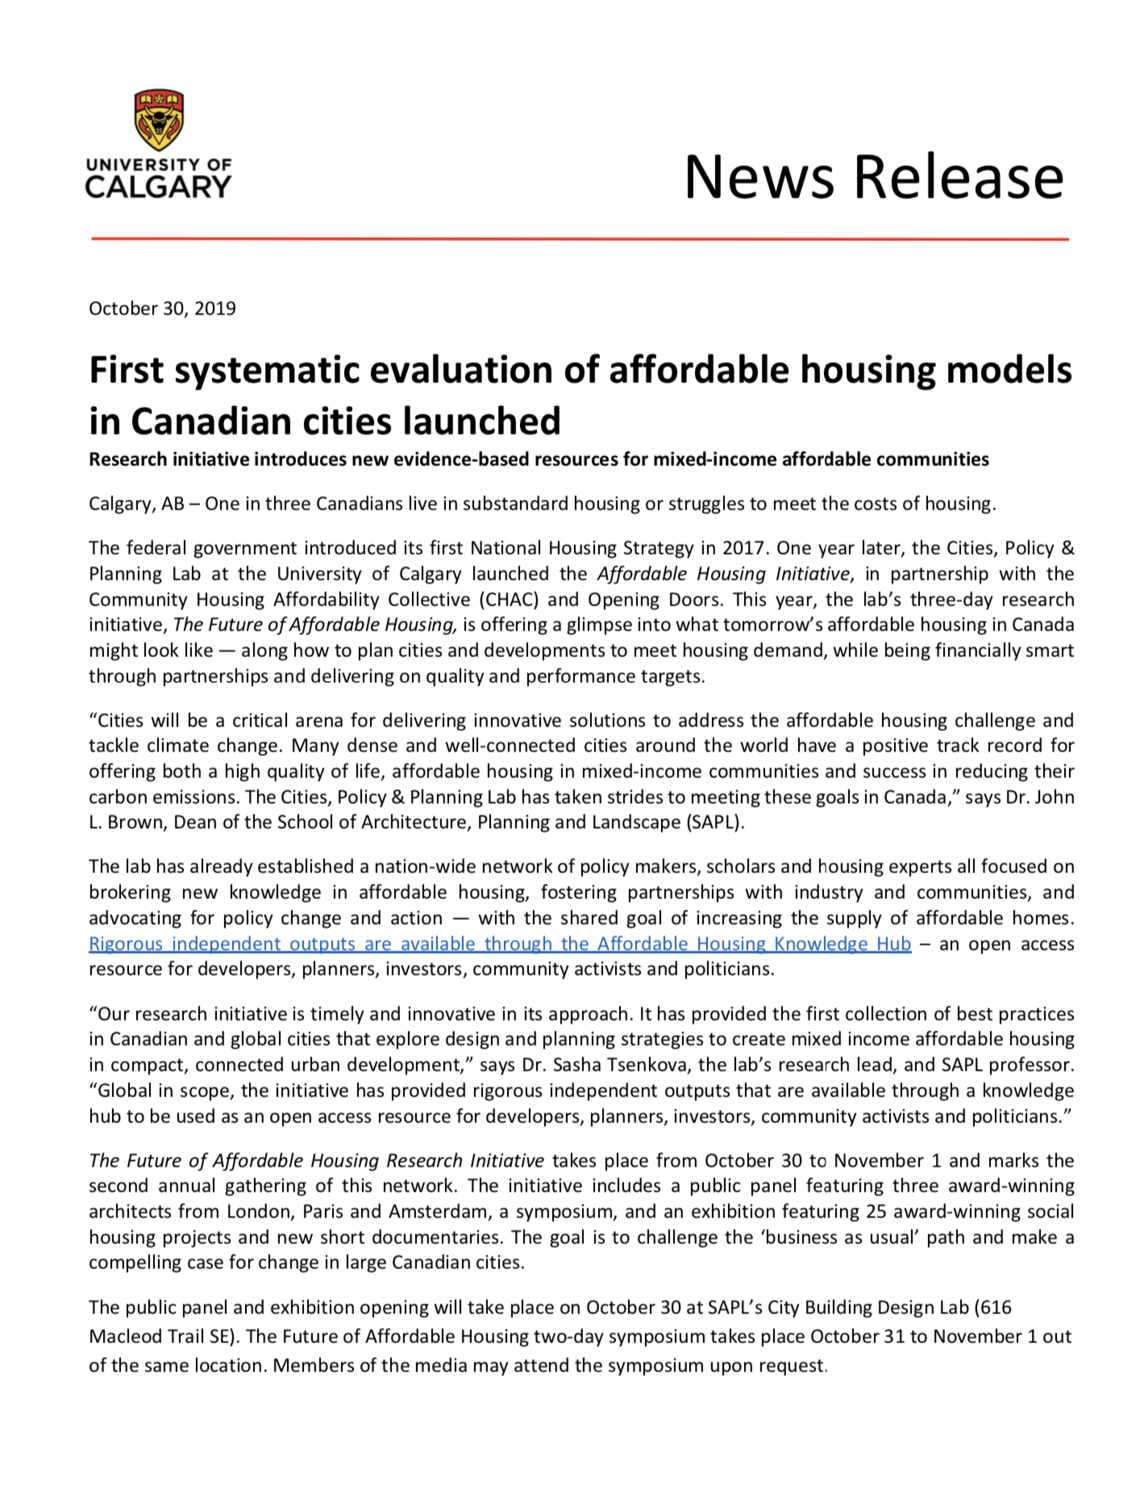 NR-First systematic evaluation of affordable housing models in Canadian cities launched